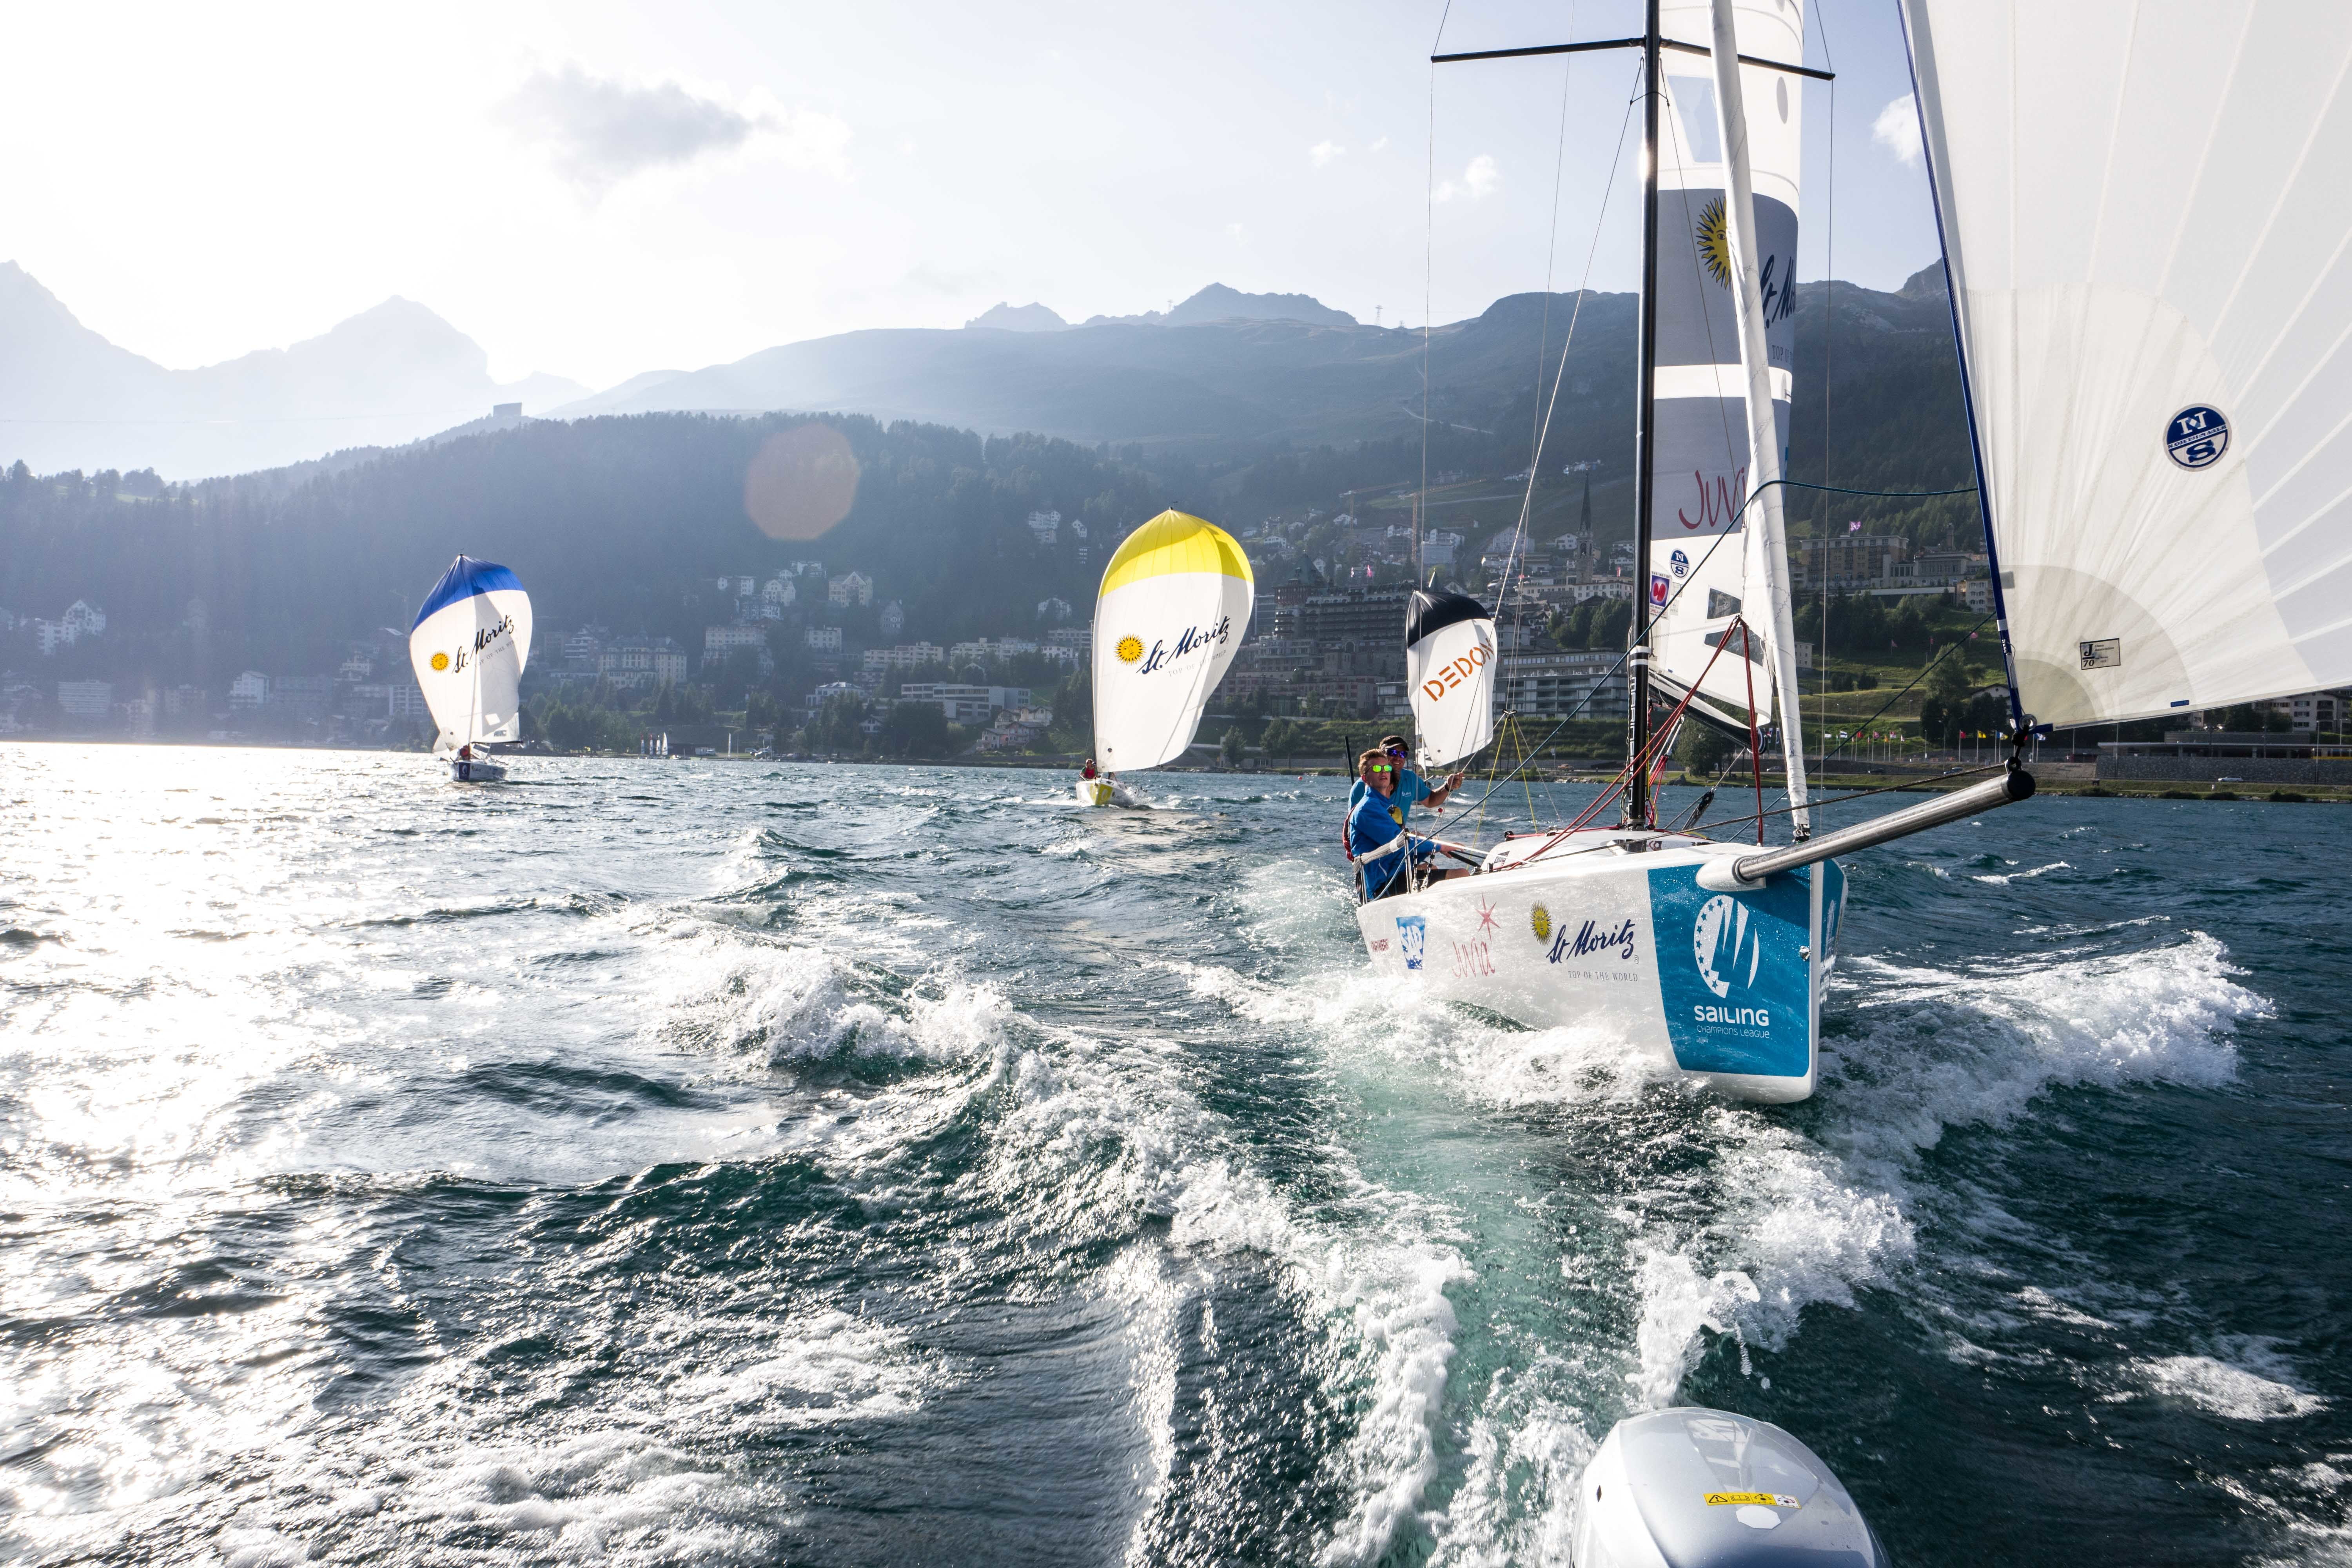 Sailing in the Engadin